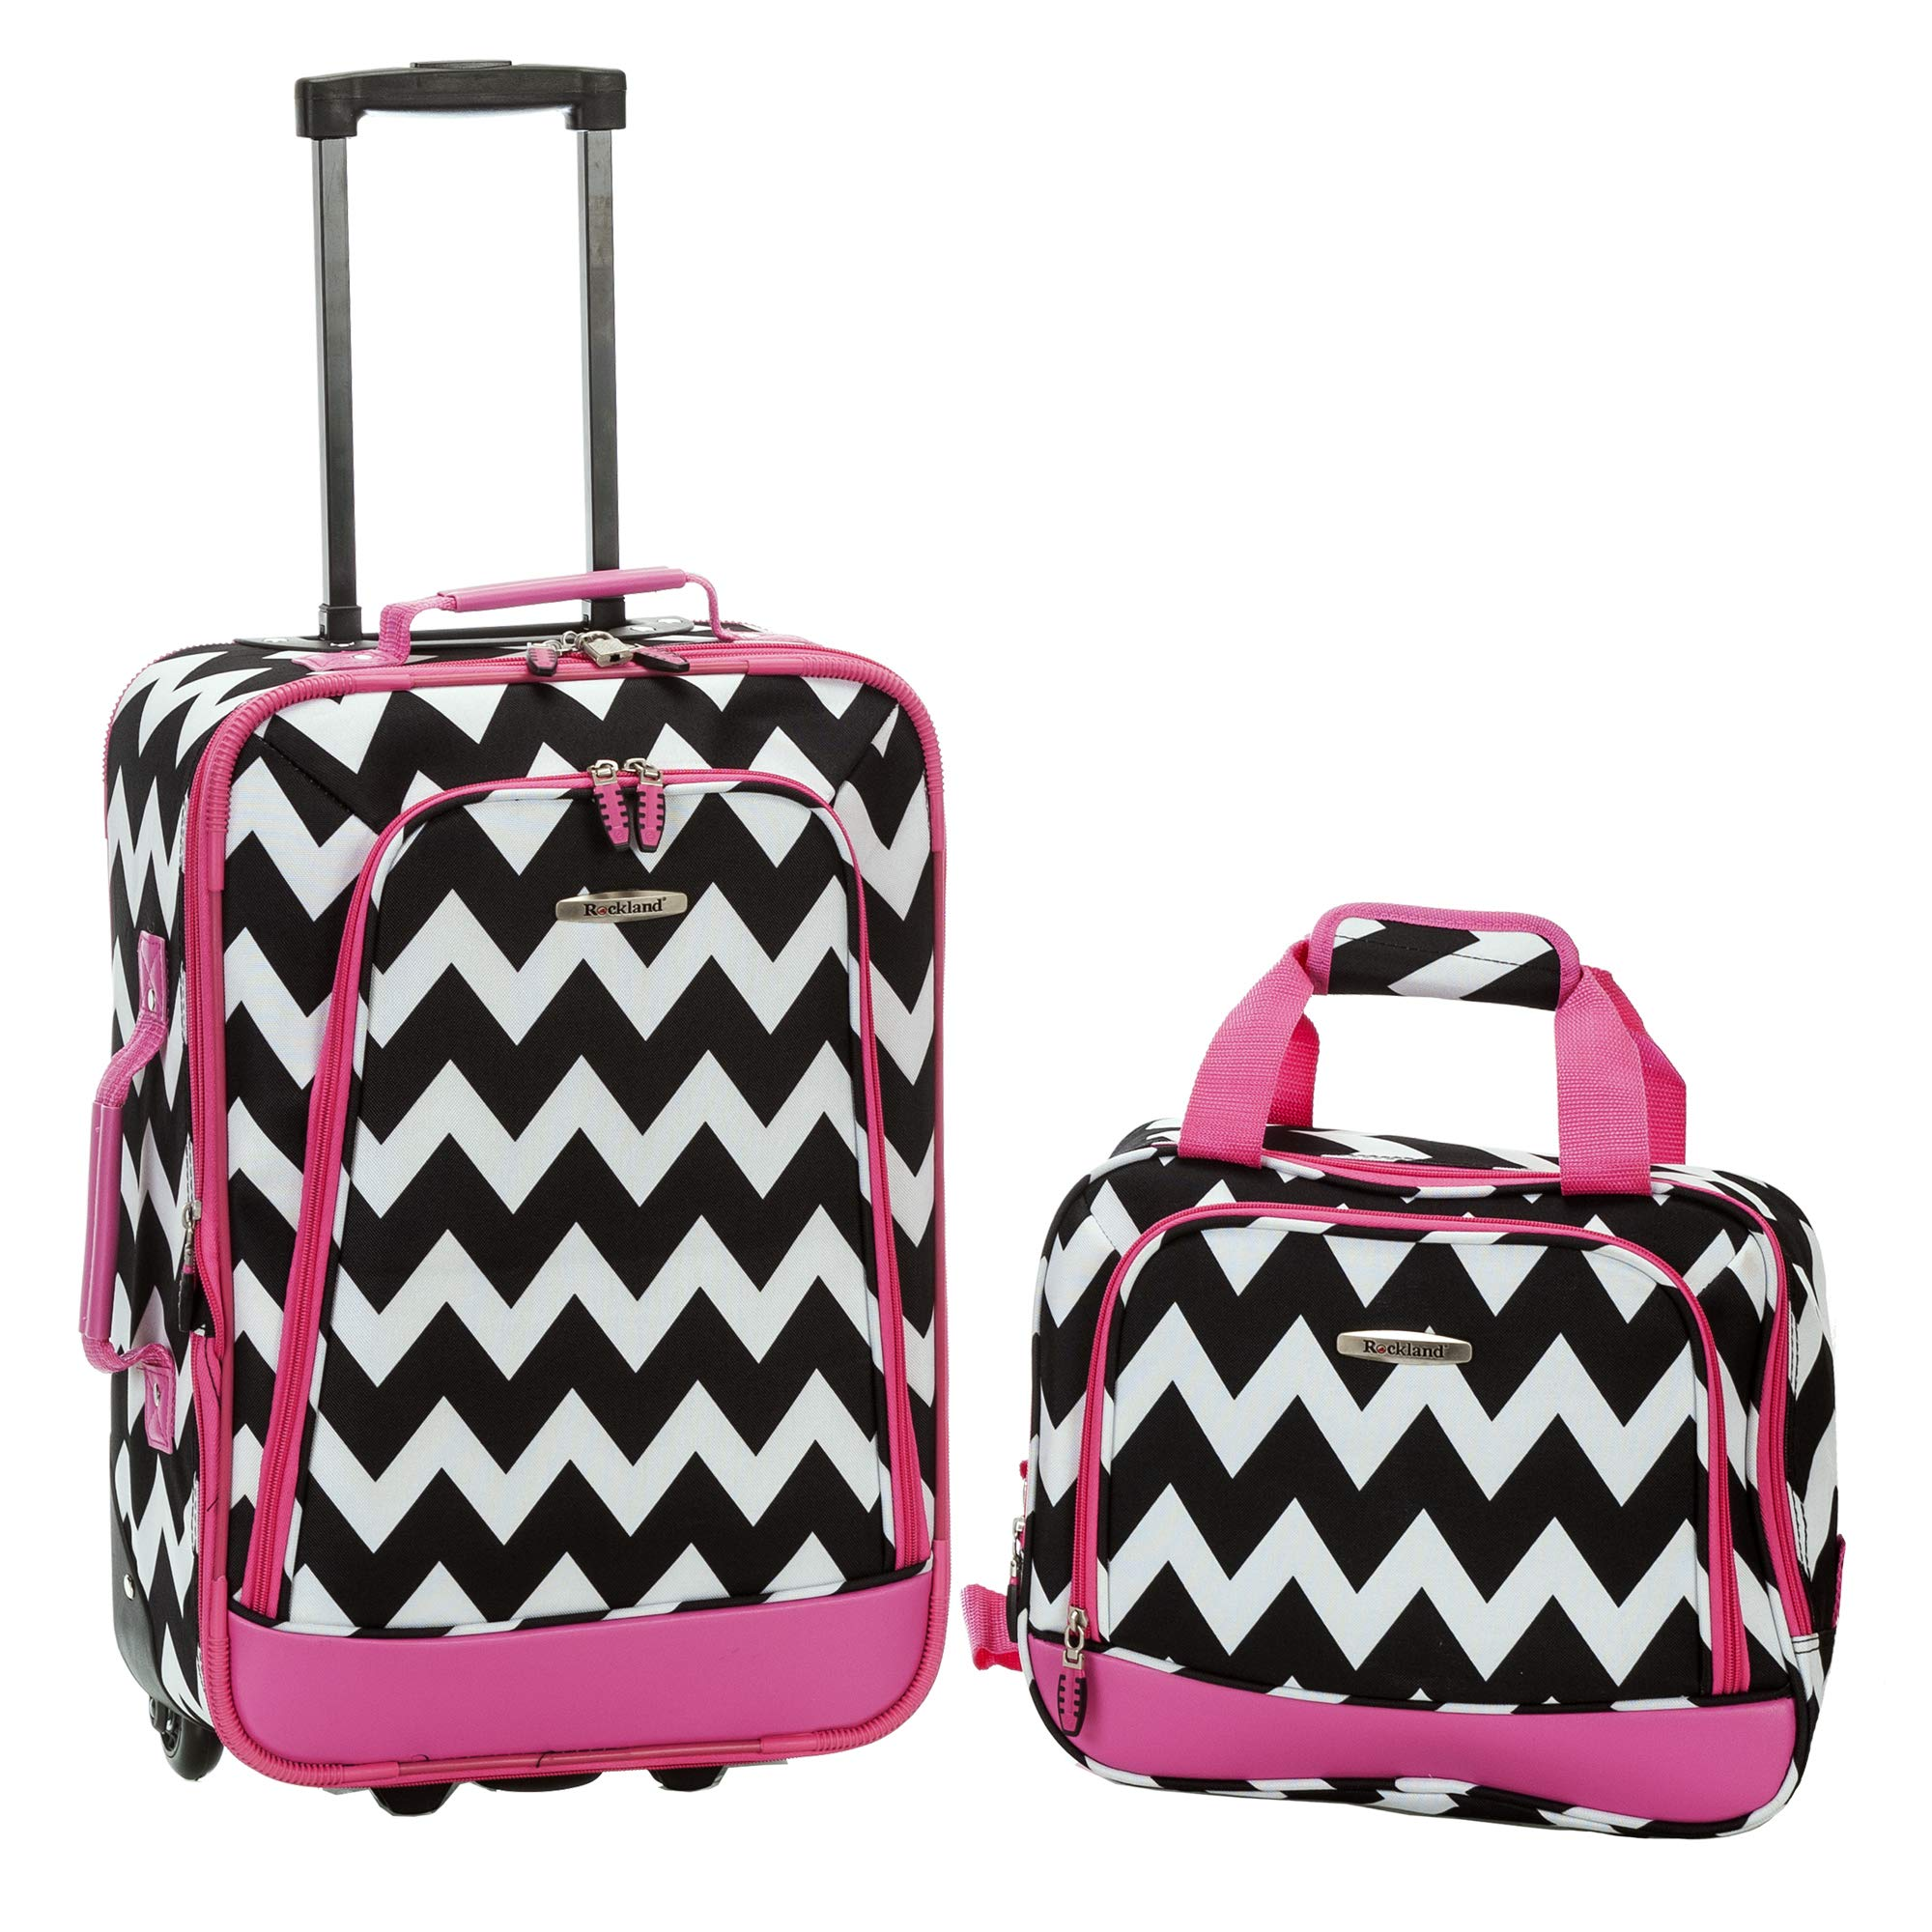 Rockland 2 Piece Expandable Luggage Set, Pink Chevron by Rockland